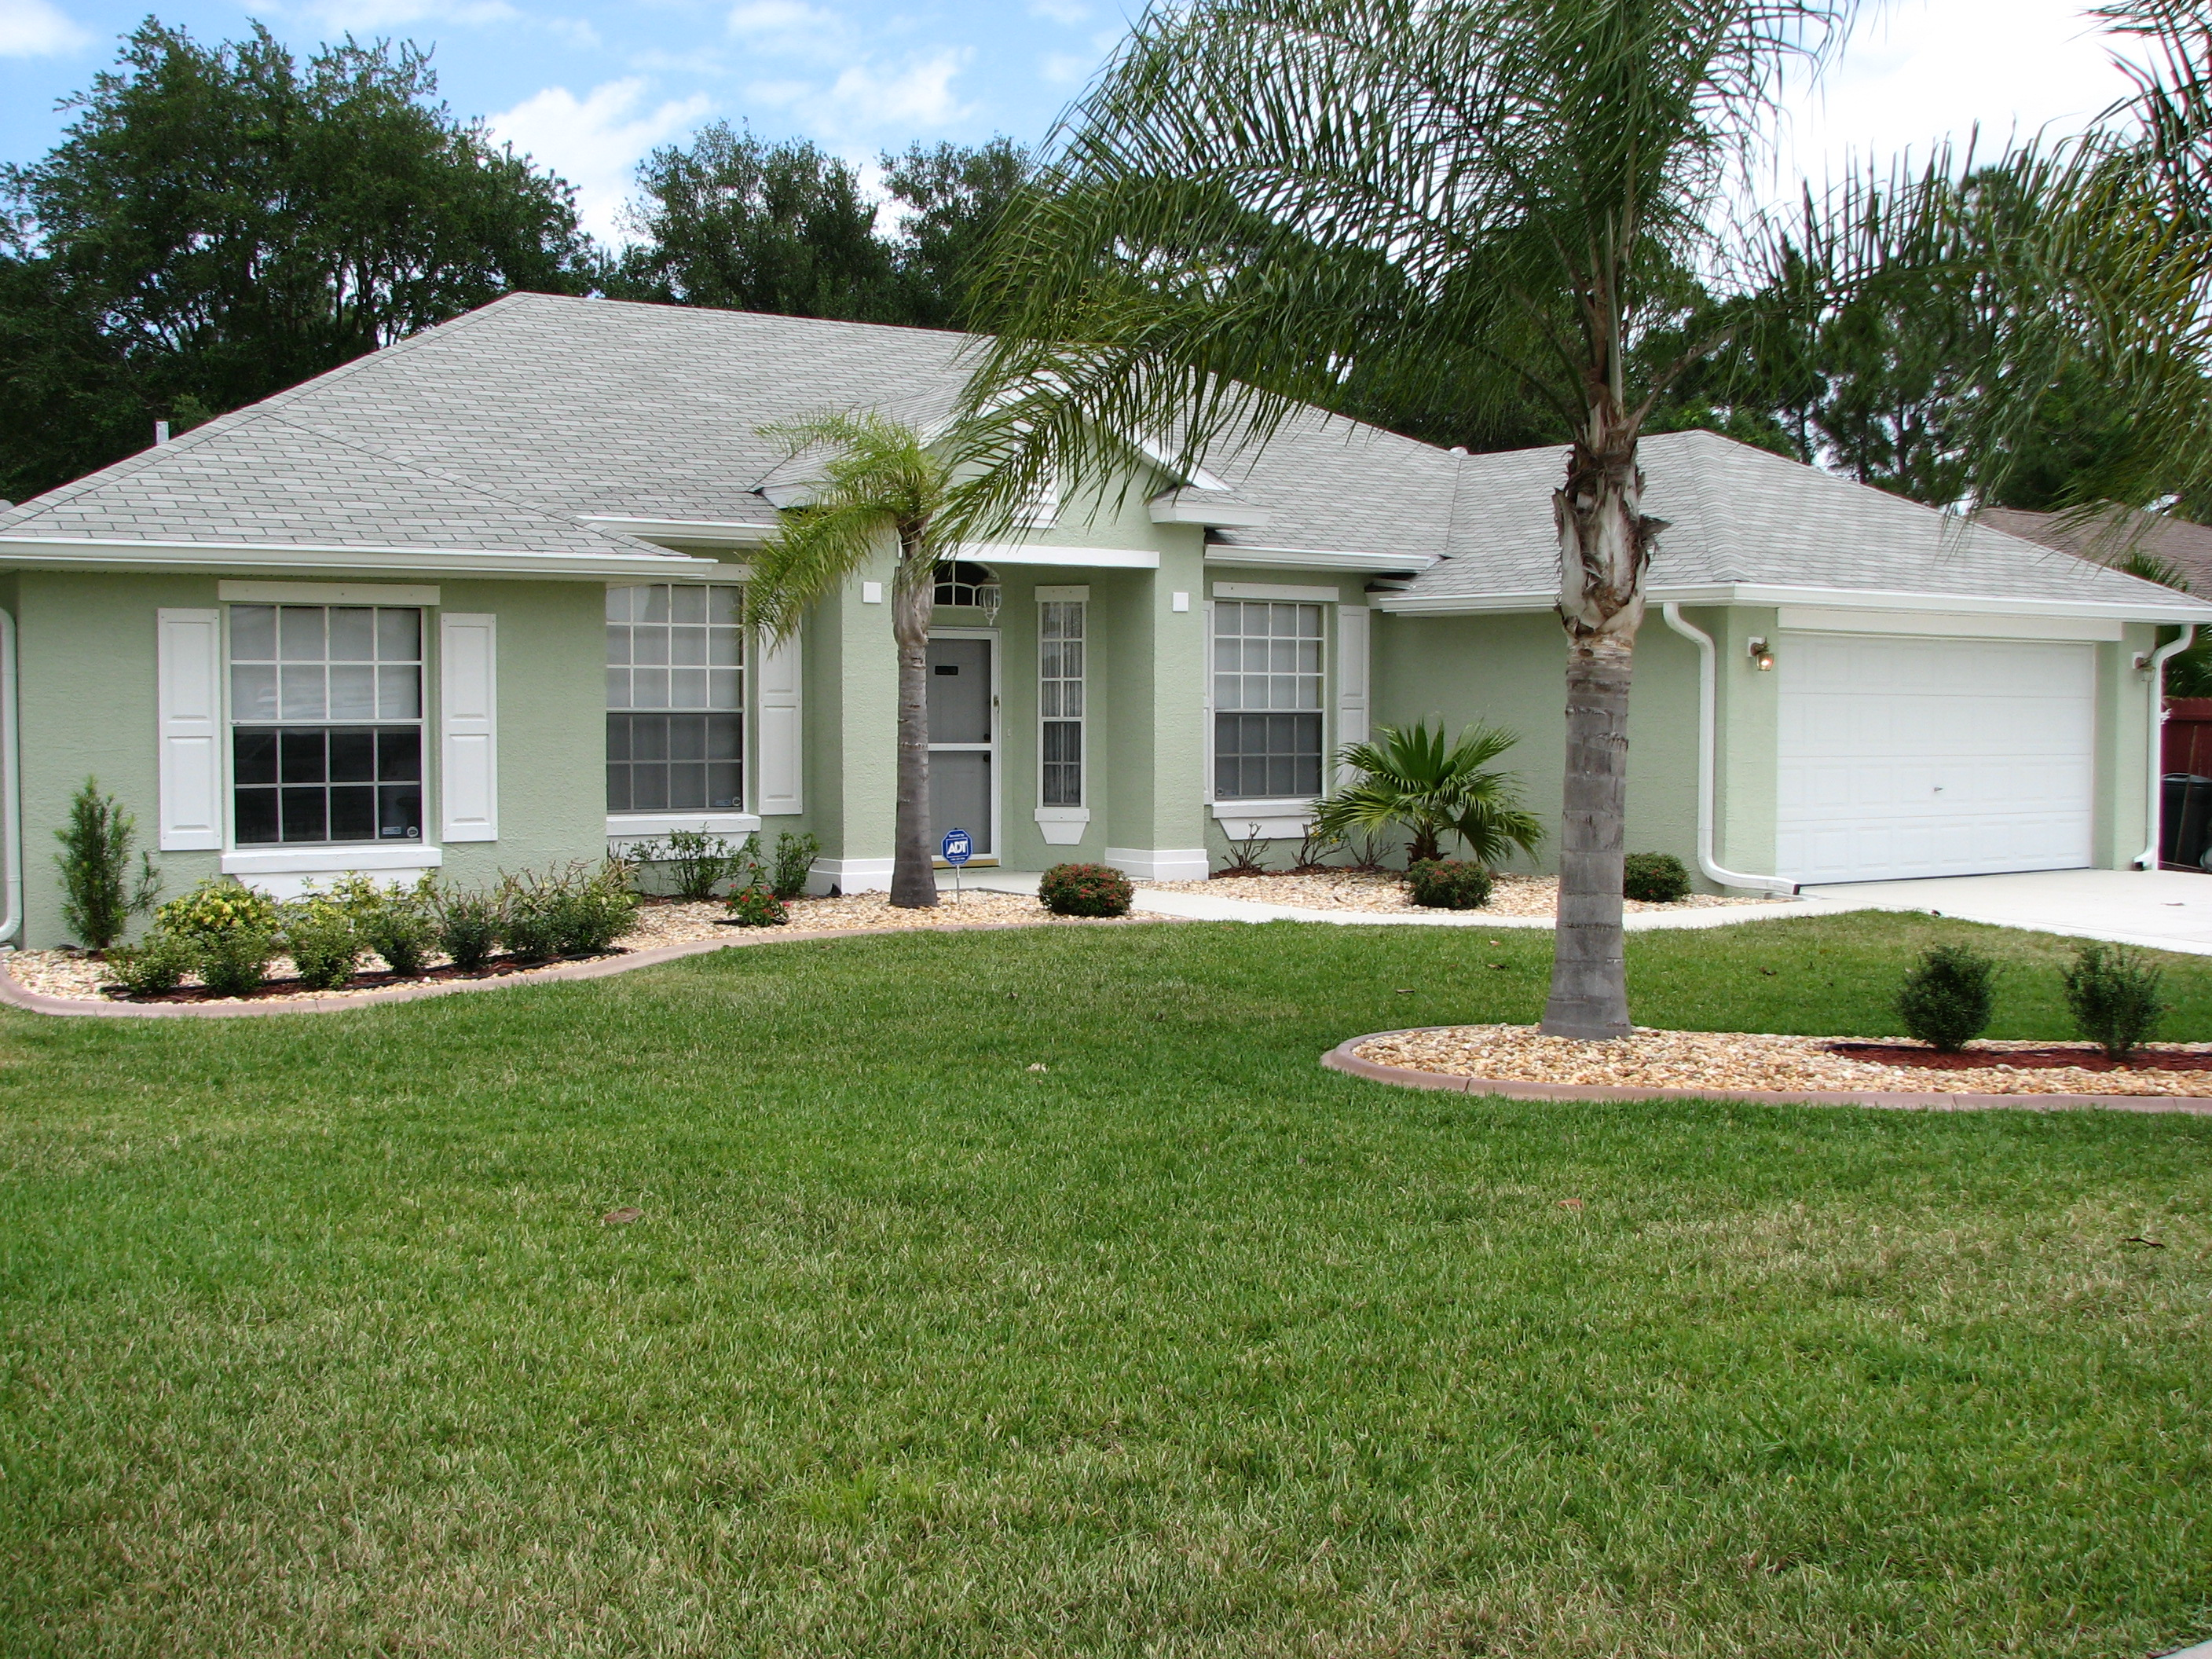 Cocoa fl exterior house painting project by peck painting for Stucco house paint colors